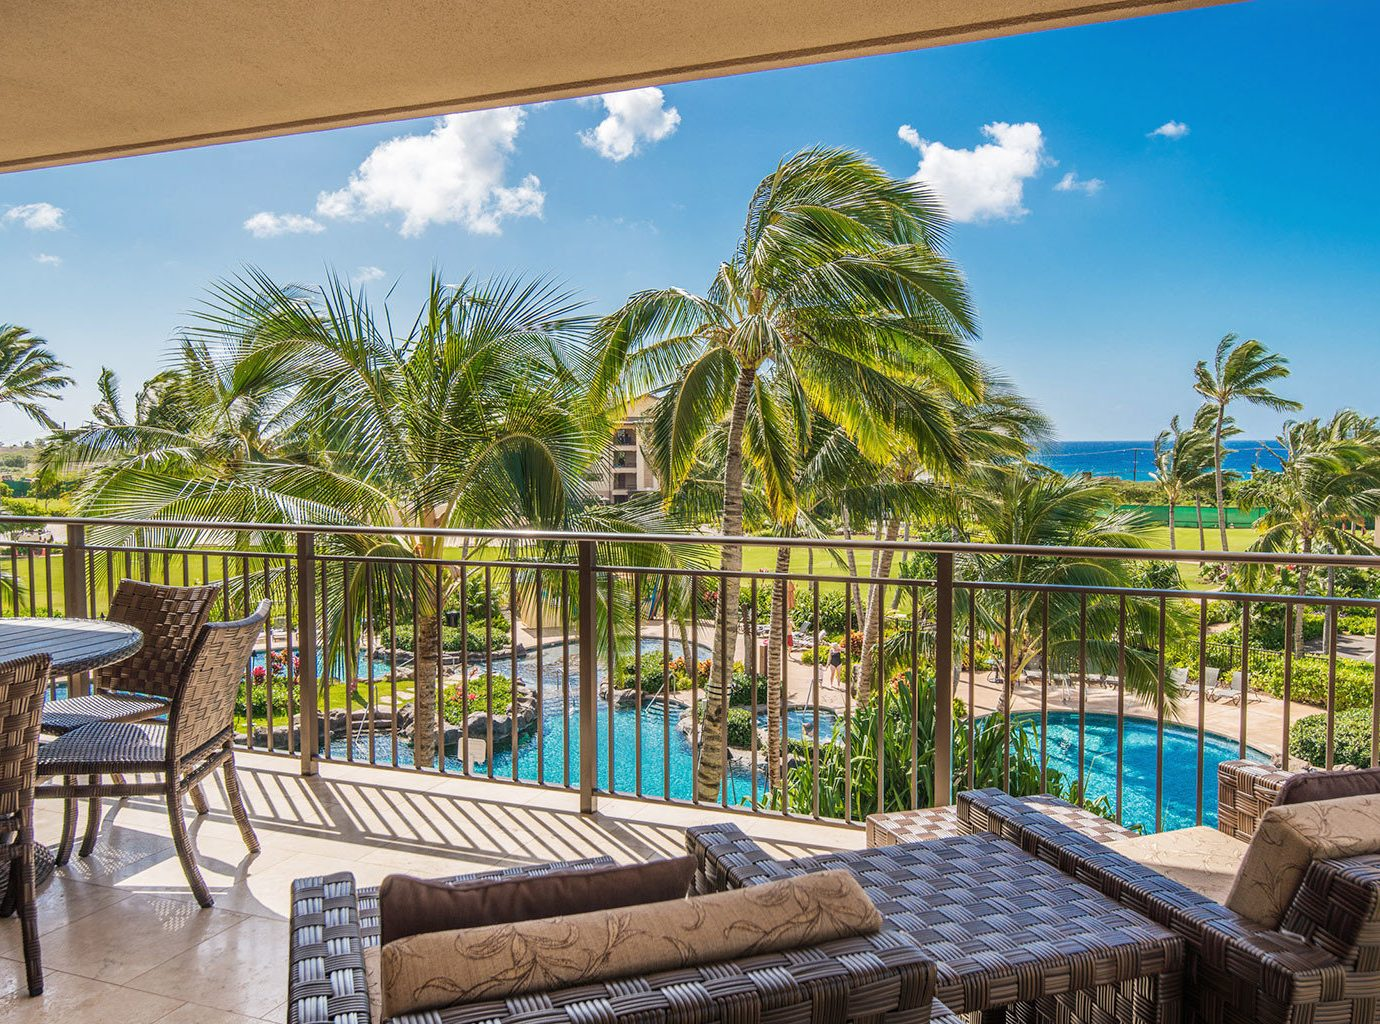 Buildings Hotels Living Lounge Pool Romance Scenic views tree sky outdoor property Resort leisure building caribbean vacation estate real estate arecales swimming pool Villa Beach condominium eco hotel area hacienda furniture